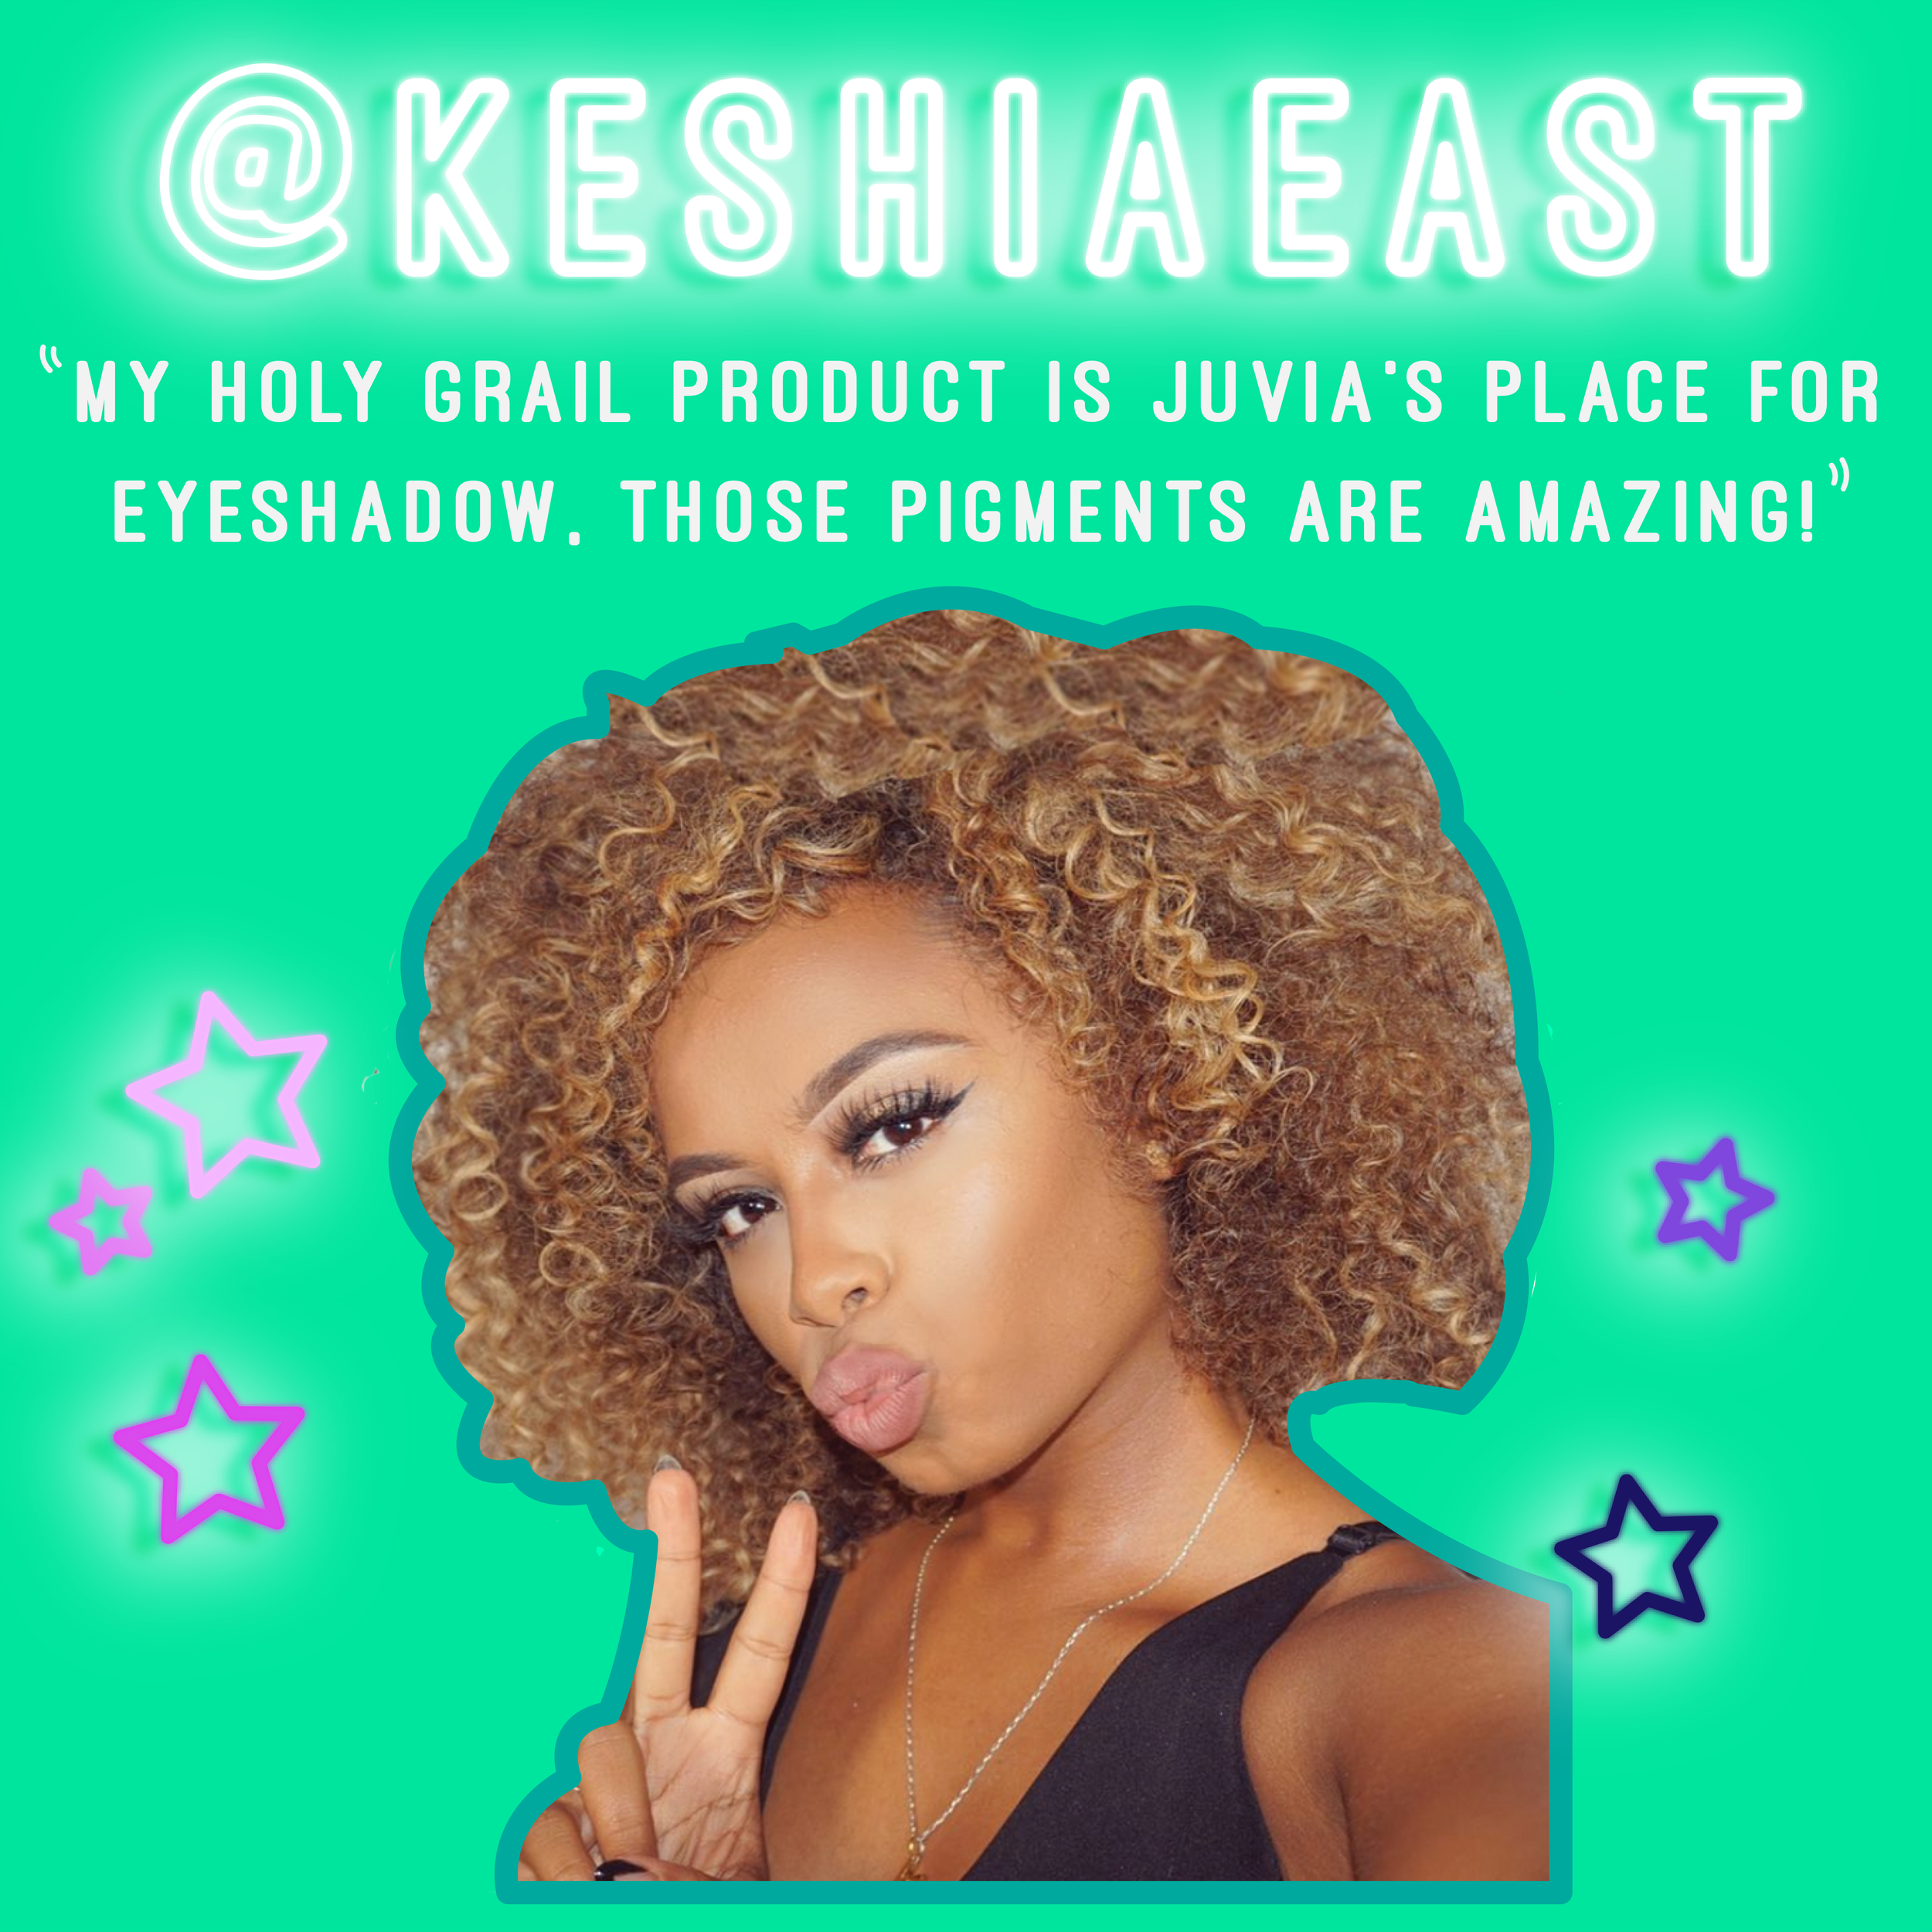 """""""Ooooo!! My Holy grail product…Juvia's place for eyeshadow- those pigments are amazing!"""" - @Keshiaeast_"""